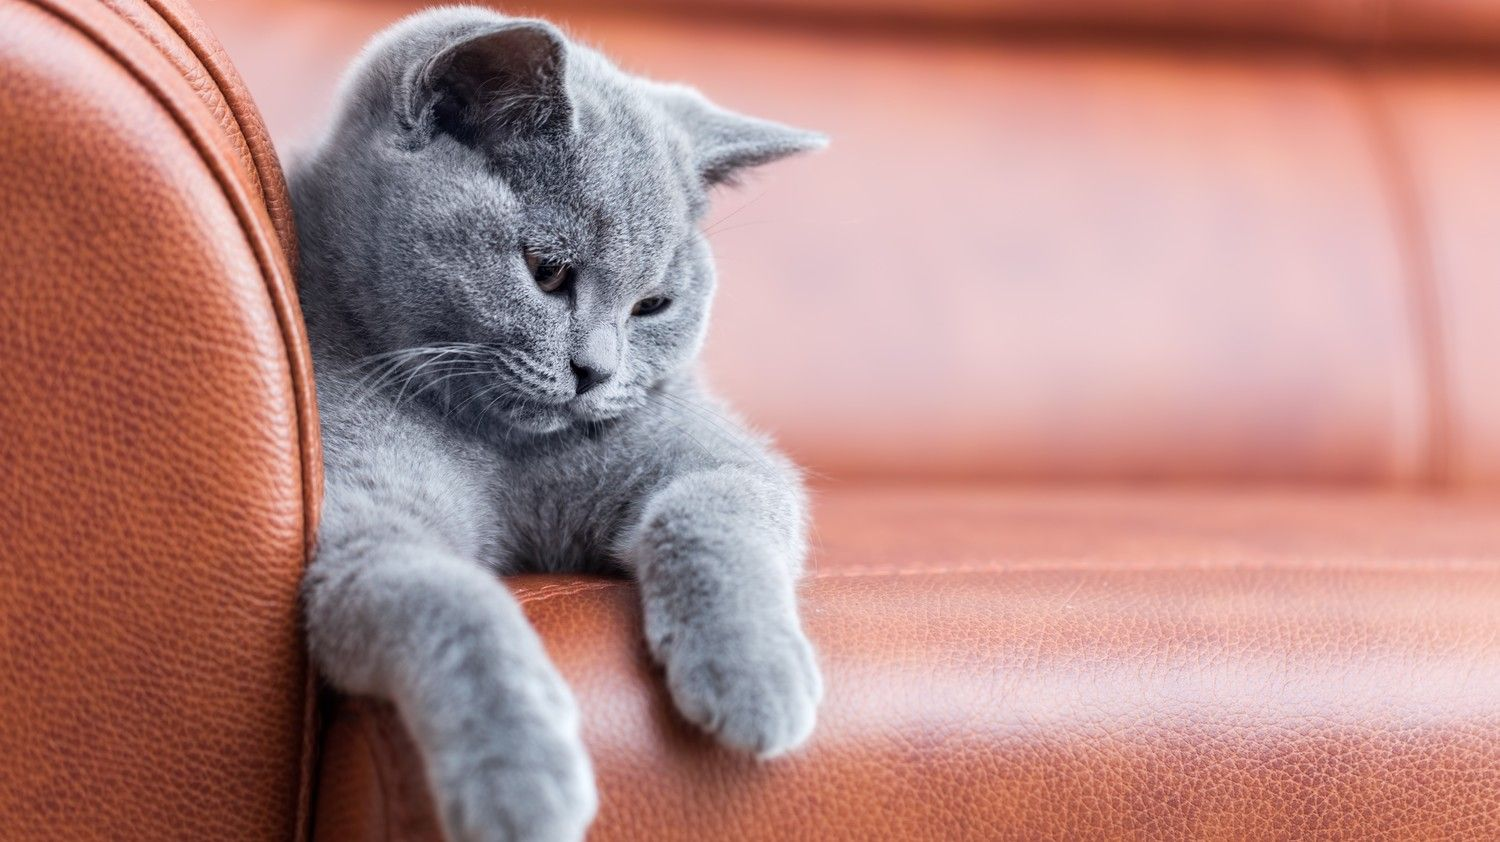 How To Stop Your Cats From Scratching The Furniture Cats Cat Scratching Cat Scratching Furniture